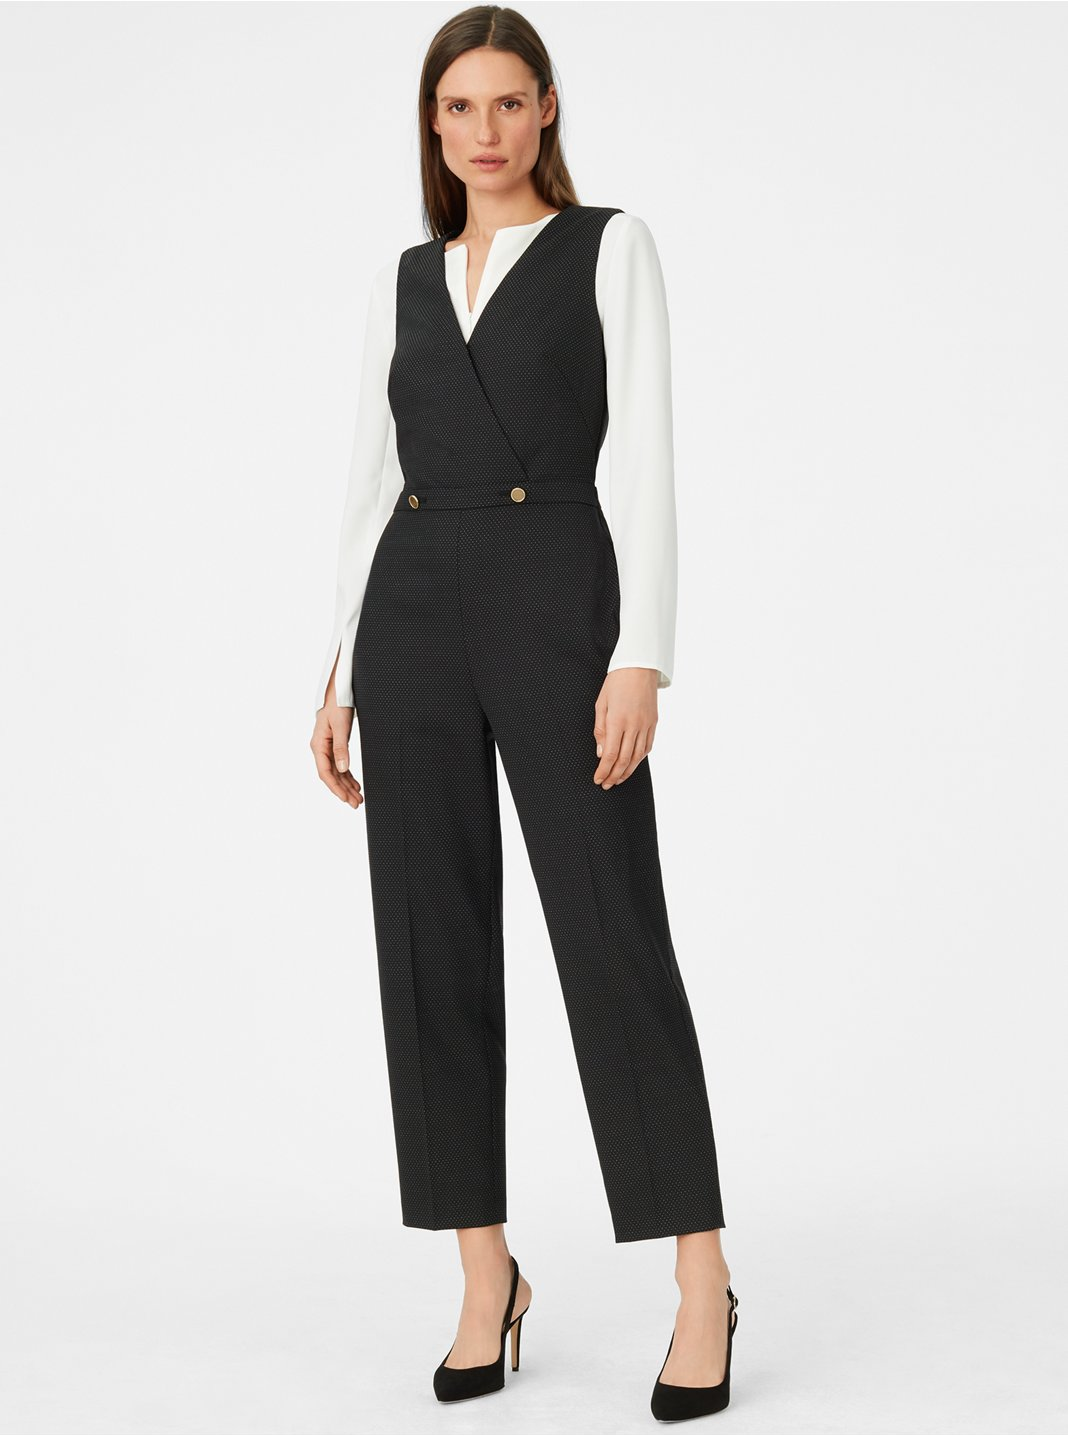 Dorotheah Pin-Dot Jumpsuit